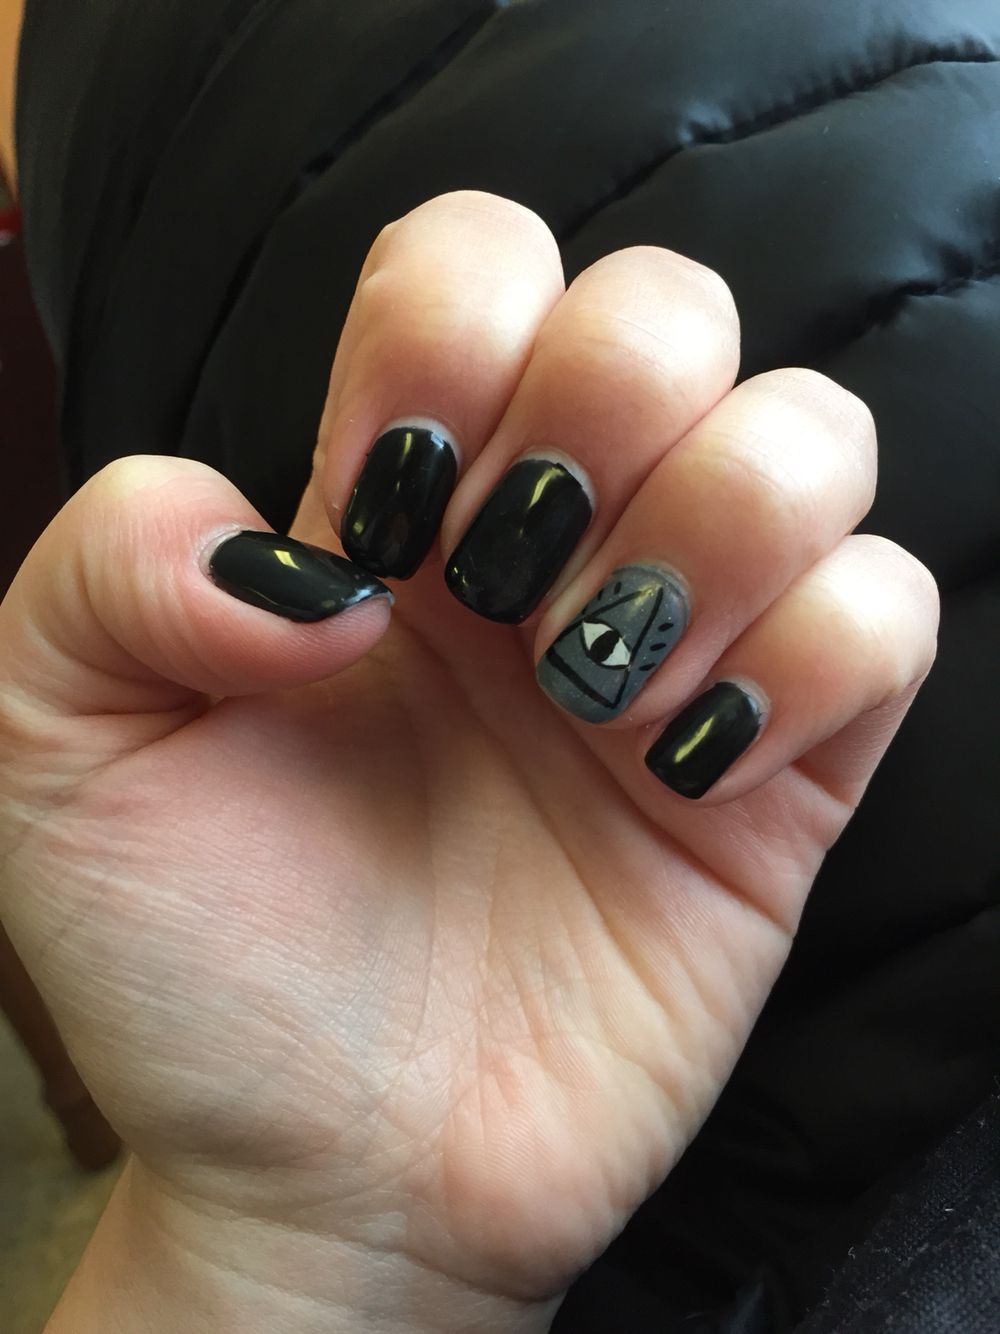 Black nails with evil eye design | Nails | Pinterest | Black nails